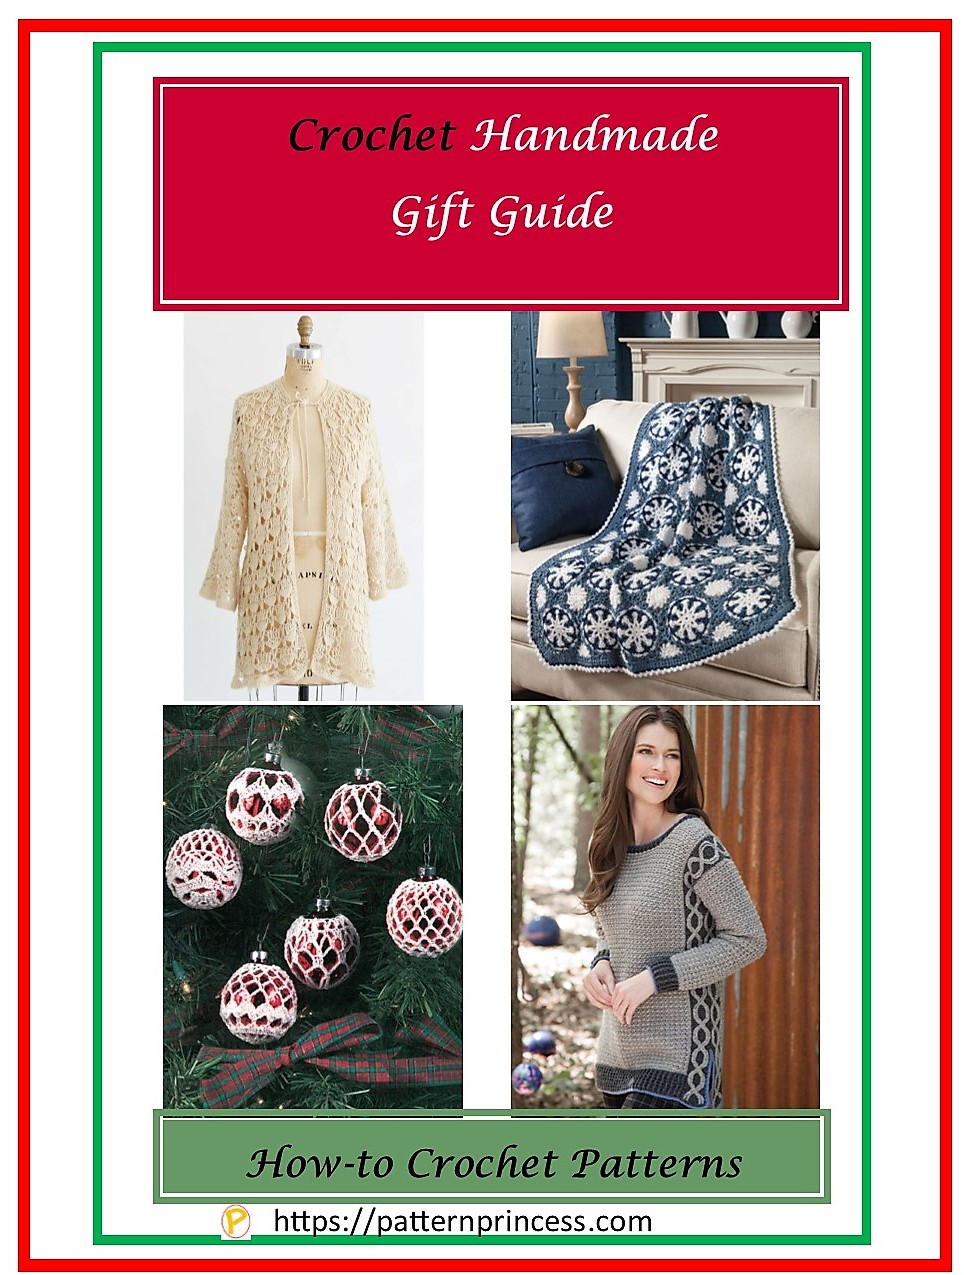 Crochet Pattern Handmade Christmas Guide 1